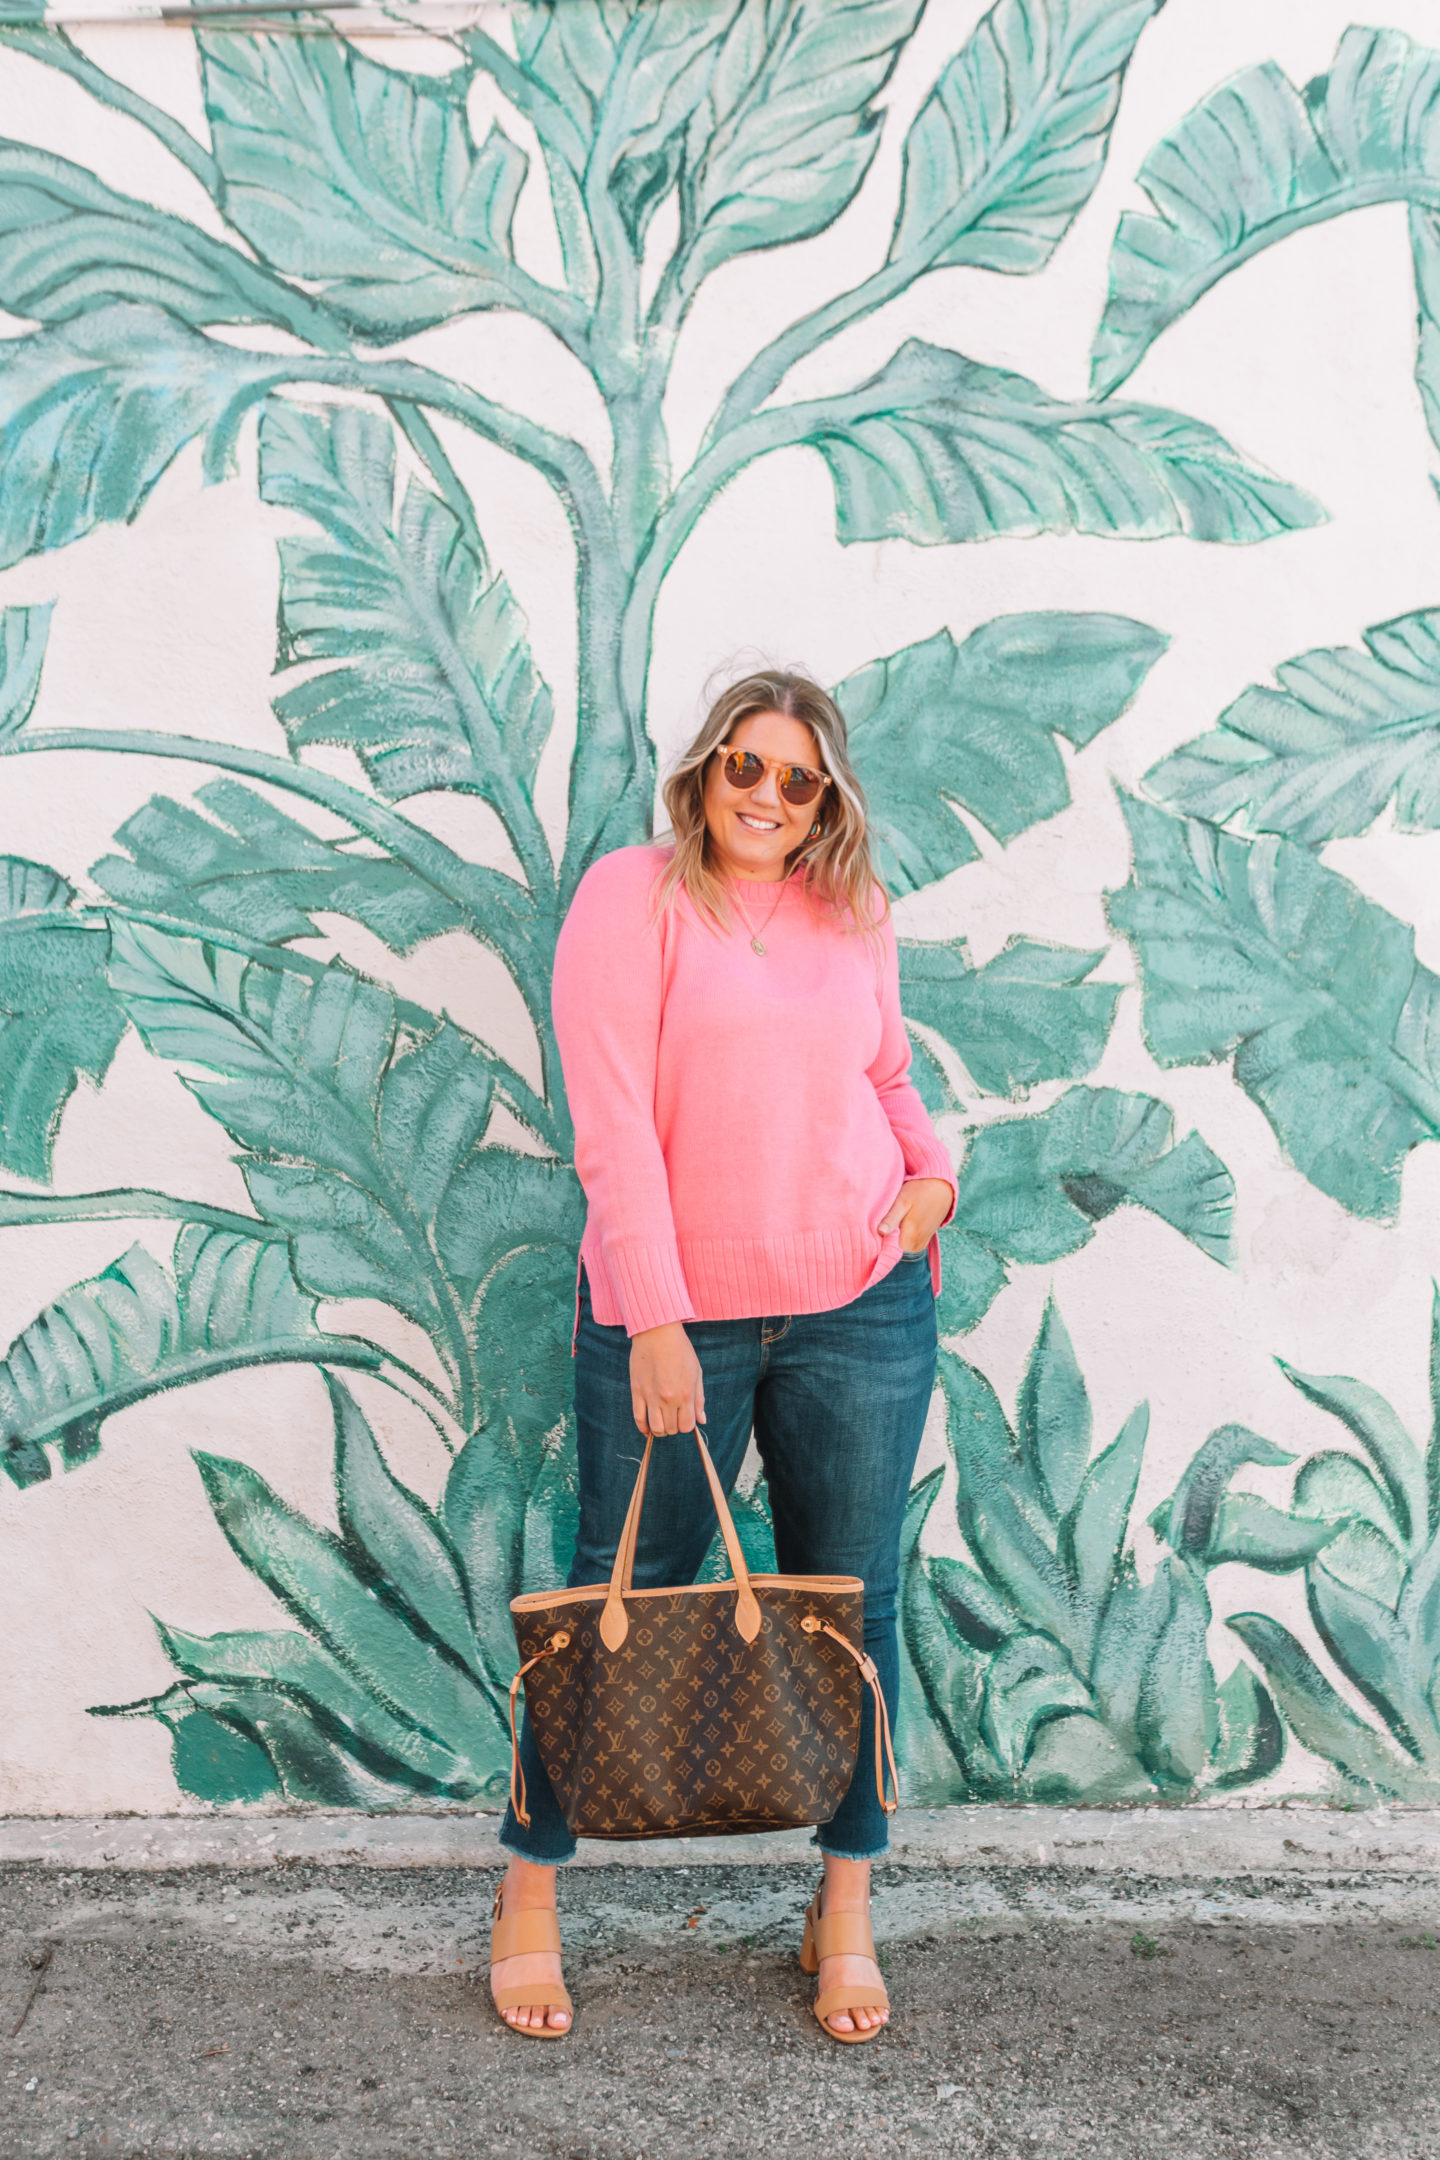 pink sweater, casual spring outfit, palm leaf wall venice beach